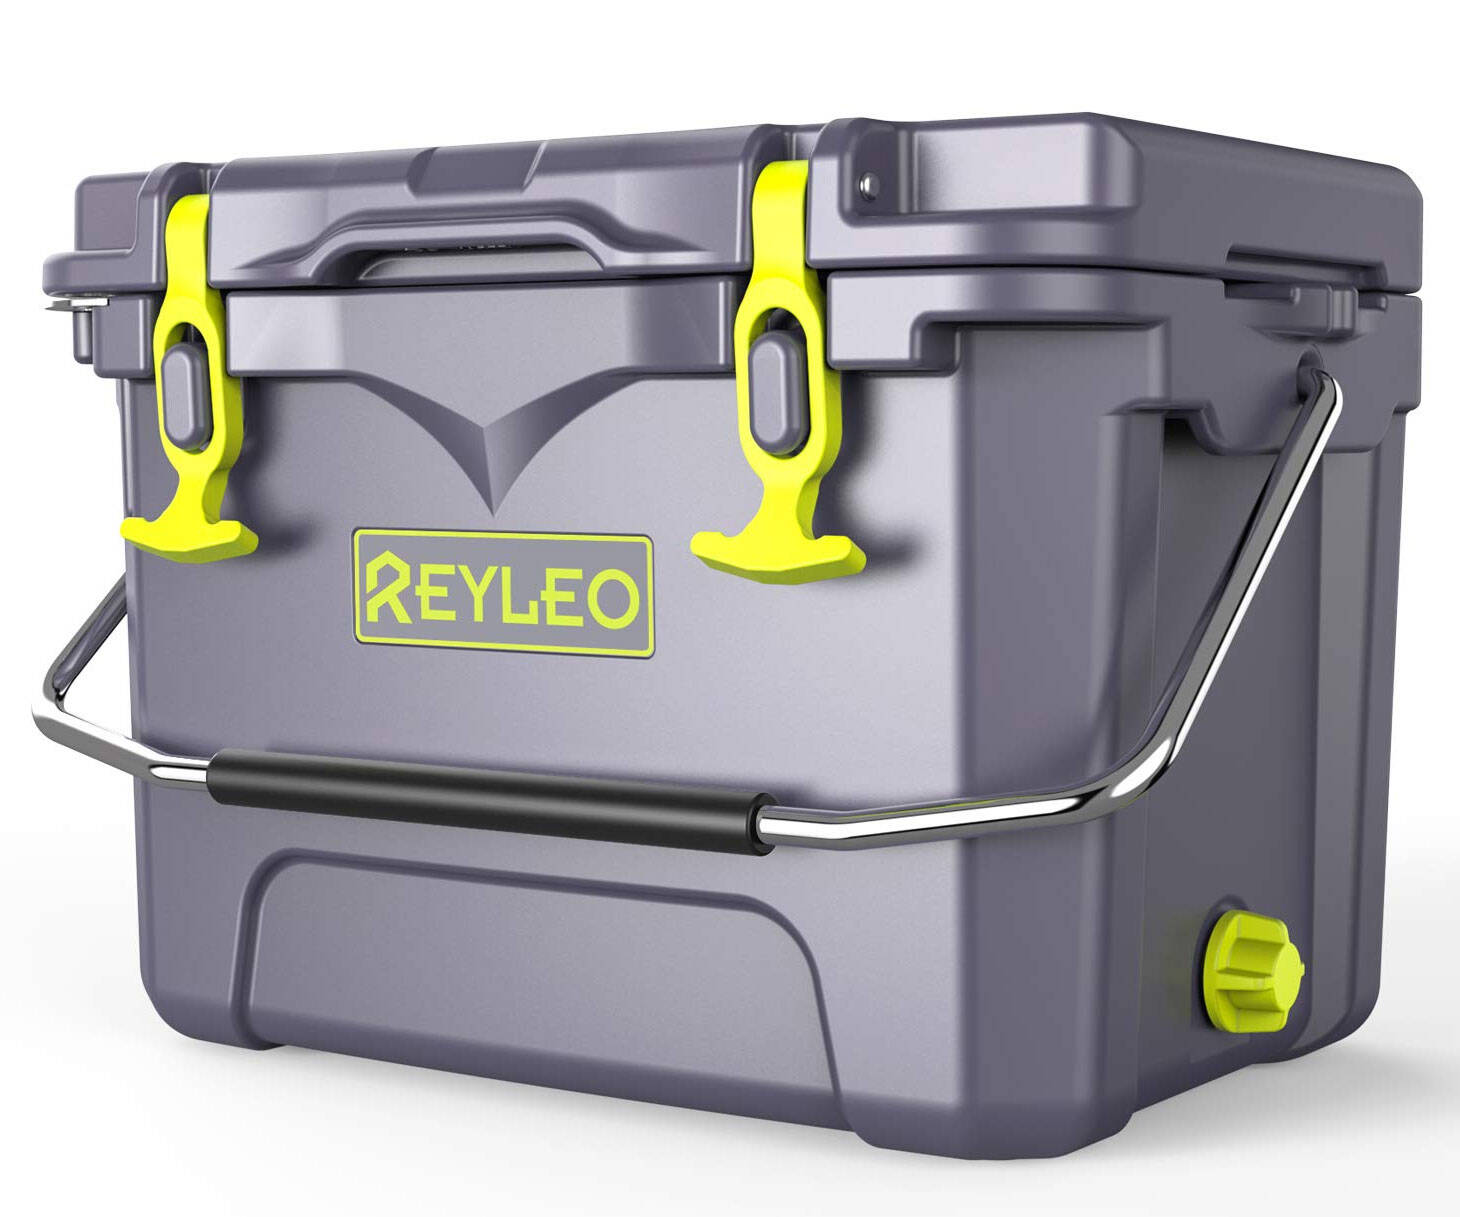 Reyleo Rugged Outdoor Cooler - coolthings.us